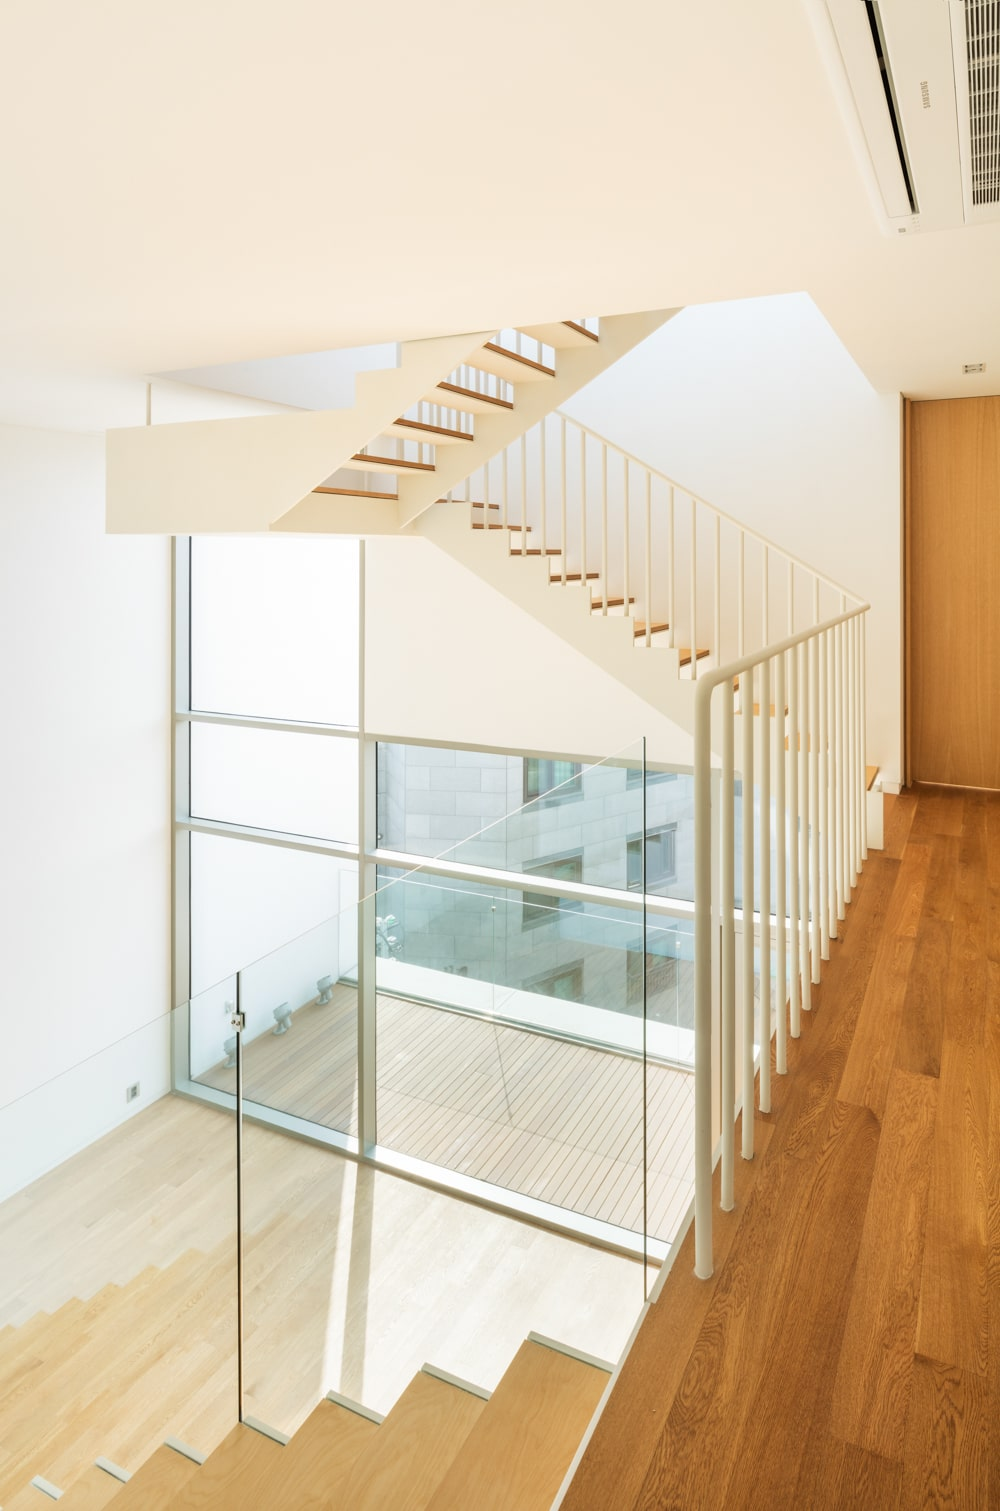 The staircase has a clear view of the floor below due to the glass walls.